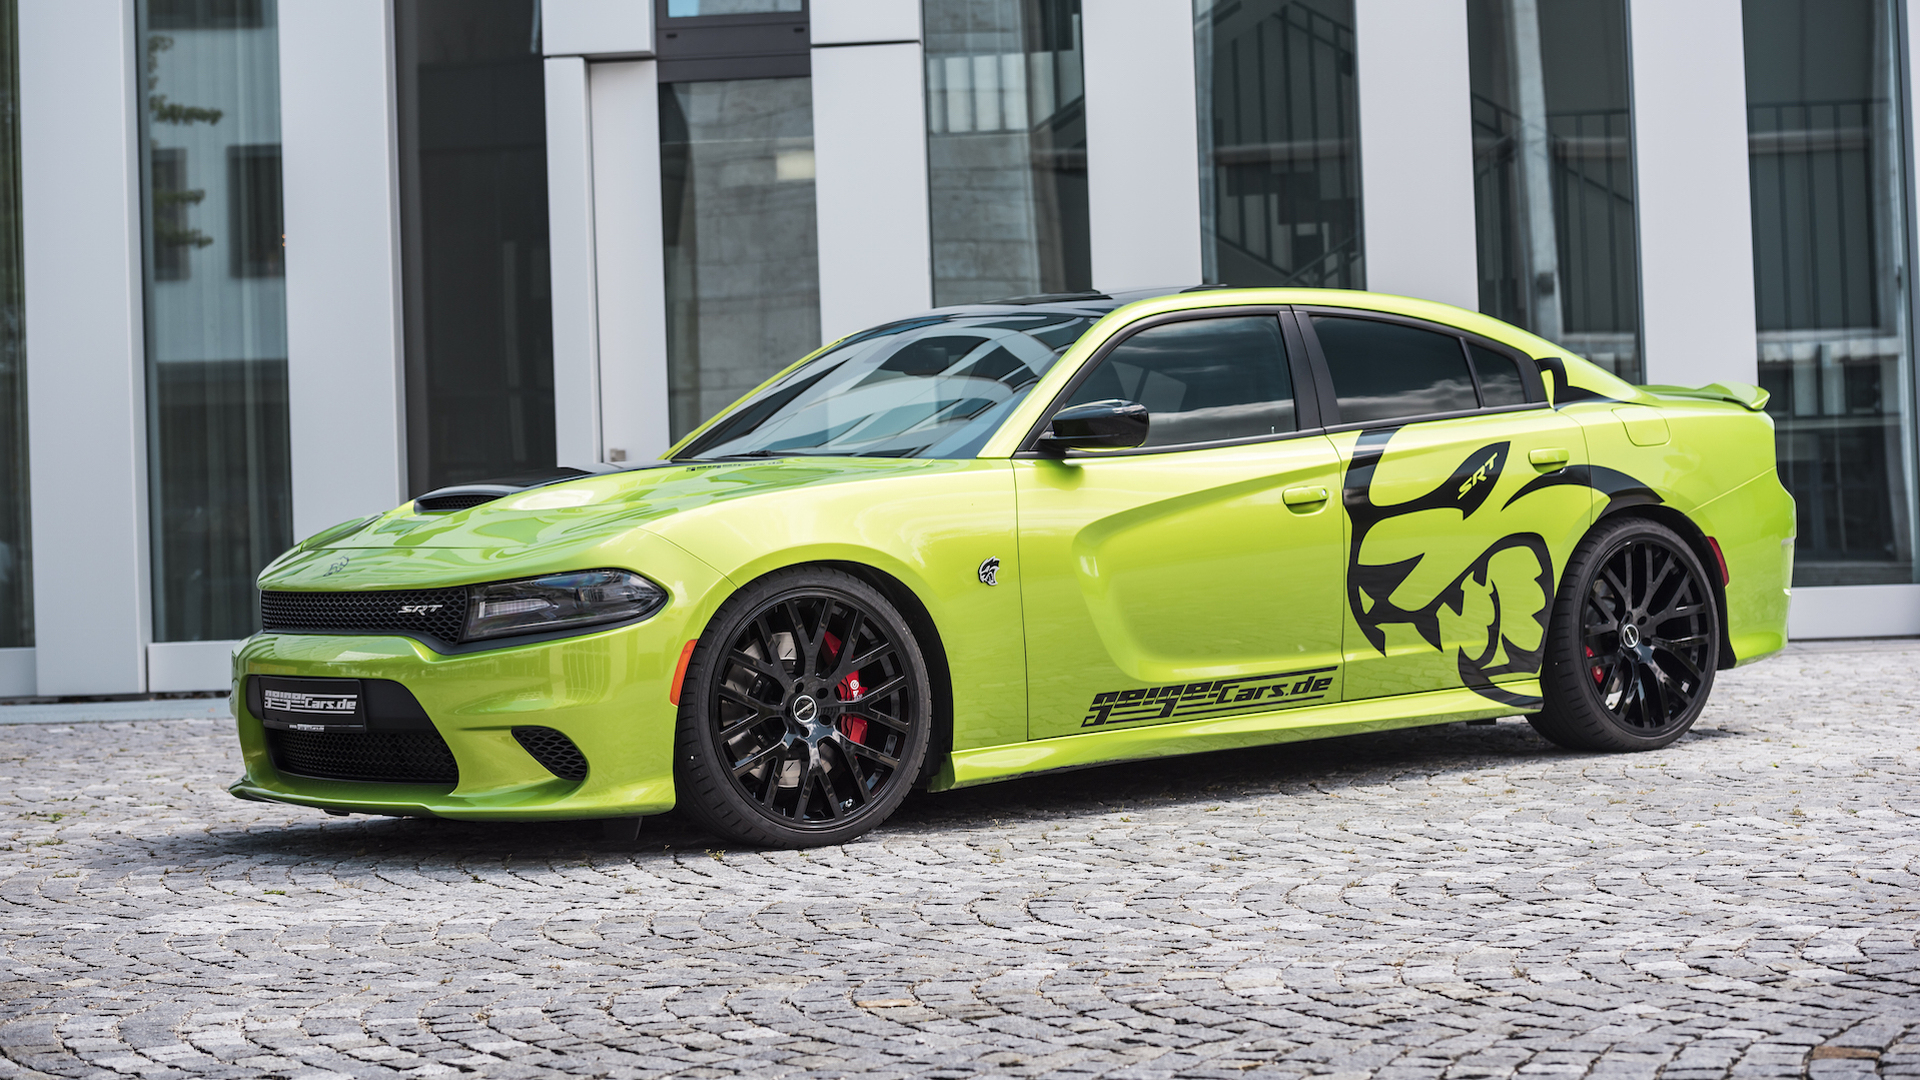 2018 Chevrolet Camaro Zl1 1le Starts 69995 also Beautiful 1970 Plymouth Barracuda King Kong Cuda together with Imagenes De Carros Clasicos moreover Plymouth Road Runner together with 70 Dodge Challenger. on dodge challenger muscle car